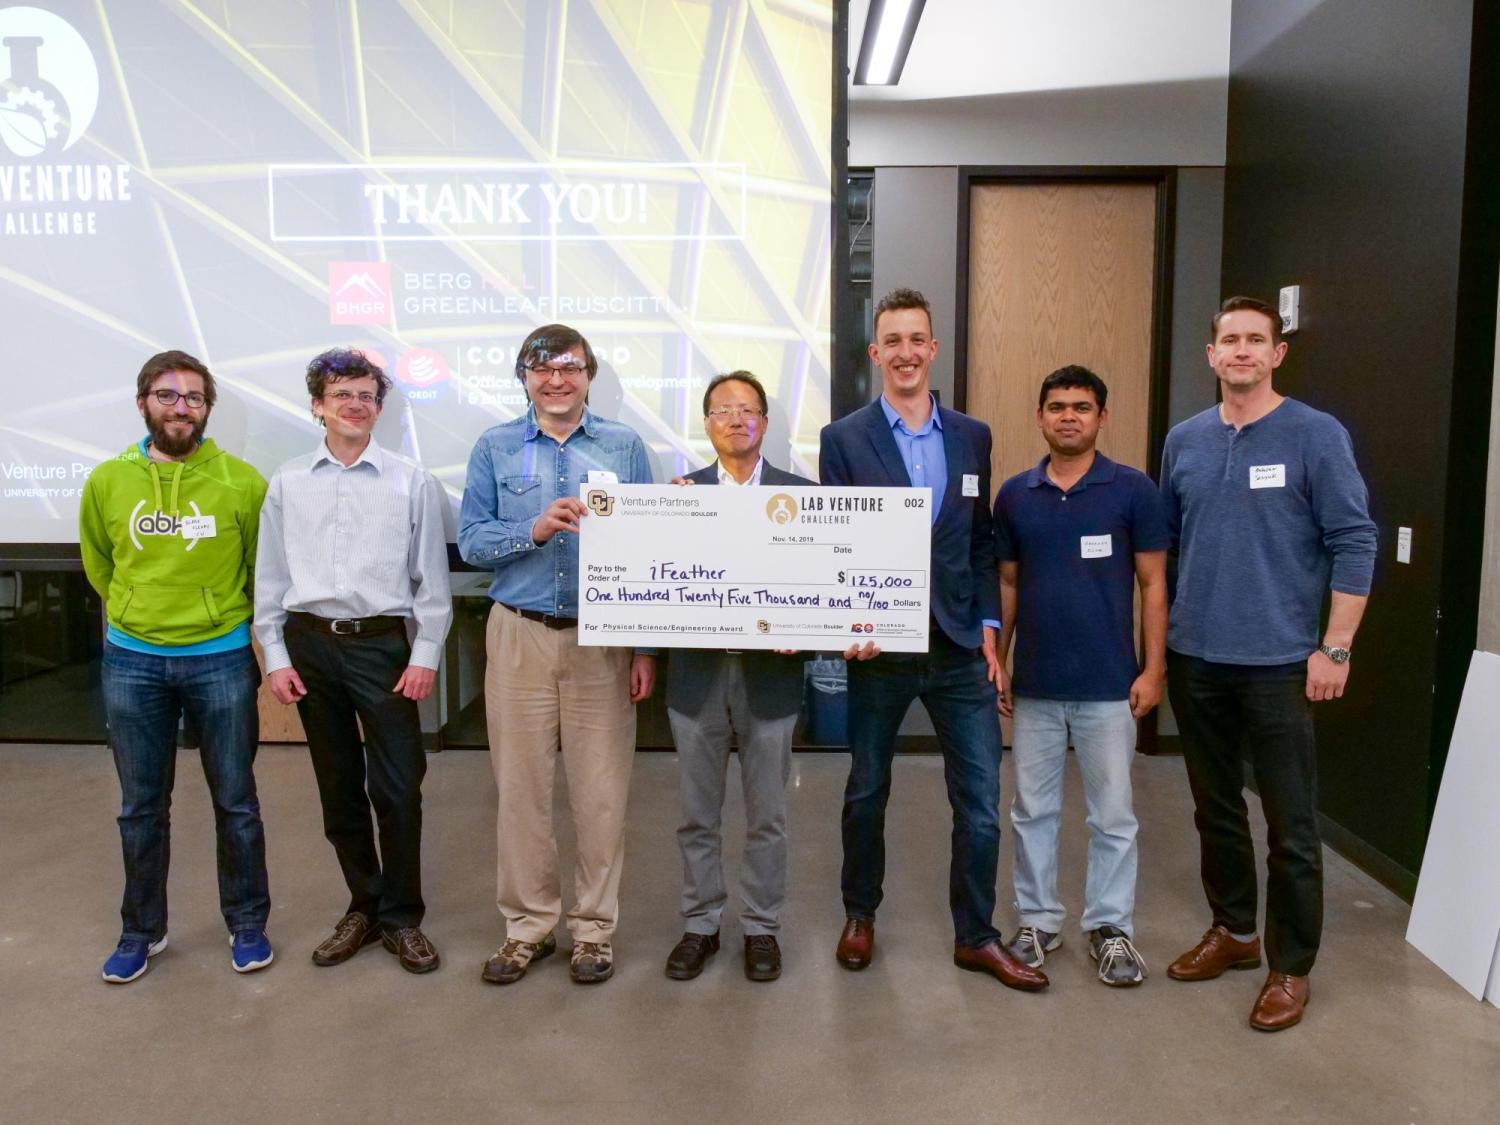 ifeather team posing with check award